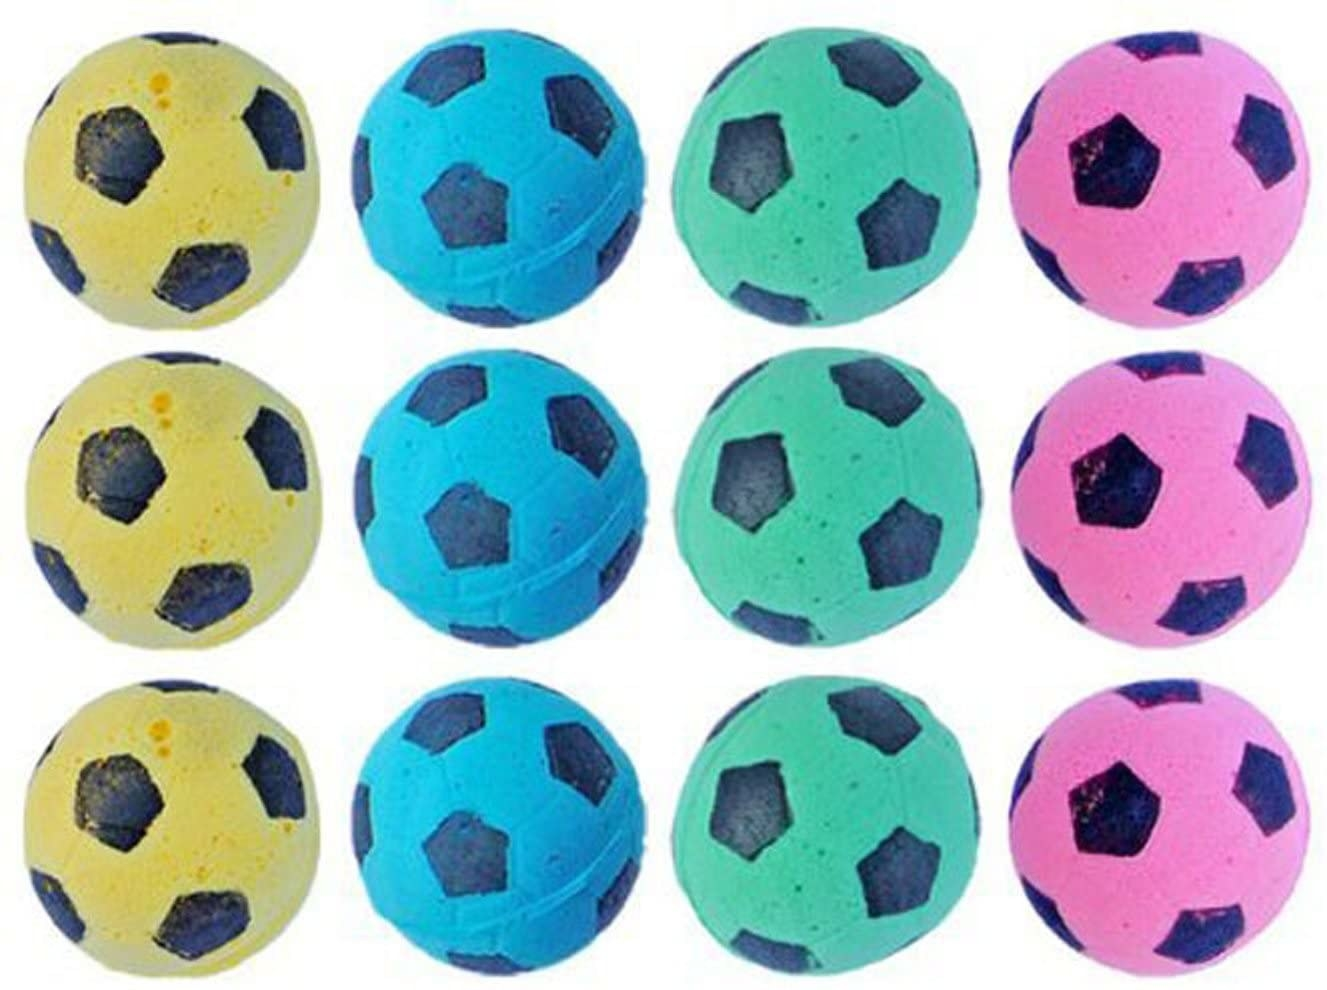 Tiny yellow, blue, green, and pink soccer balls